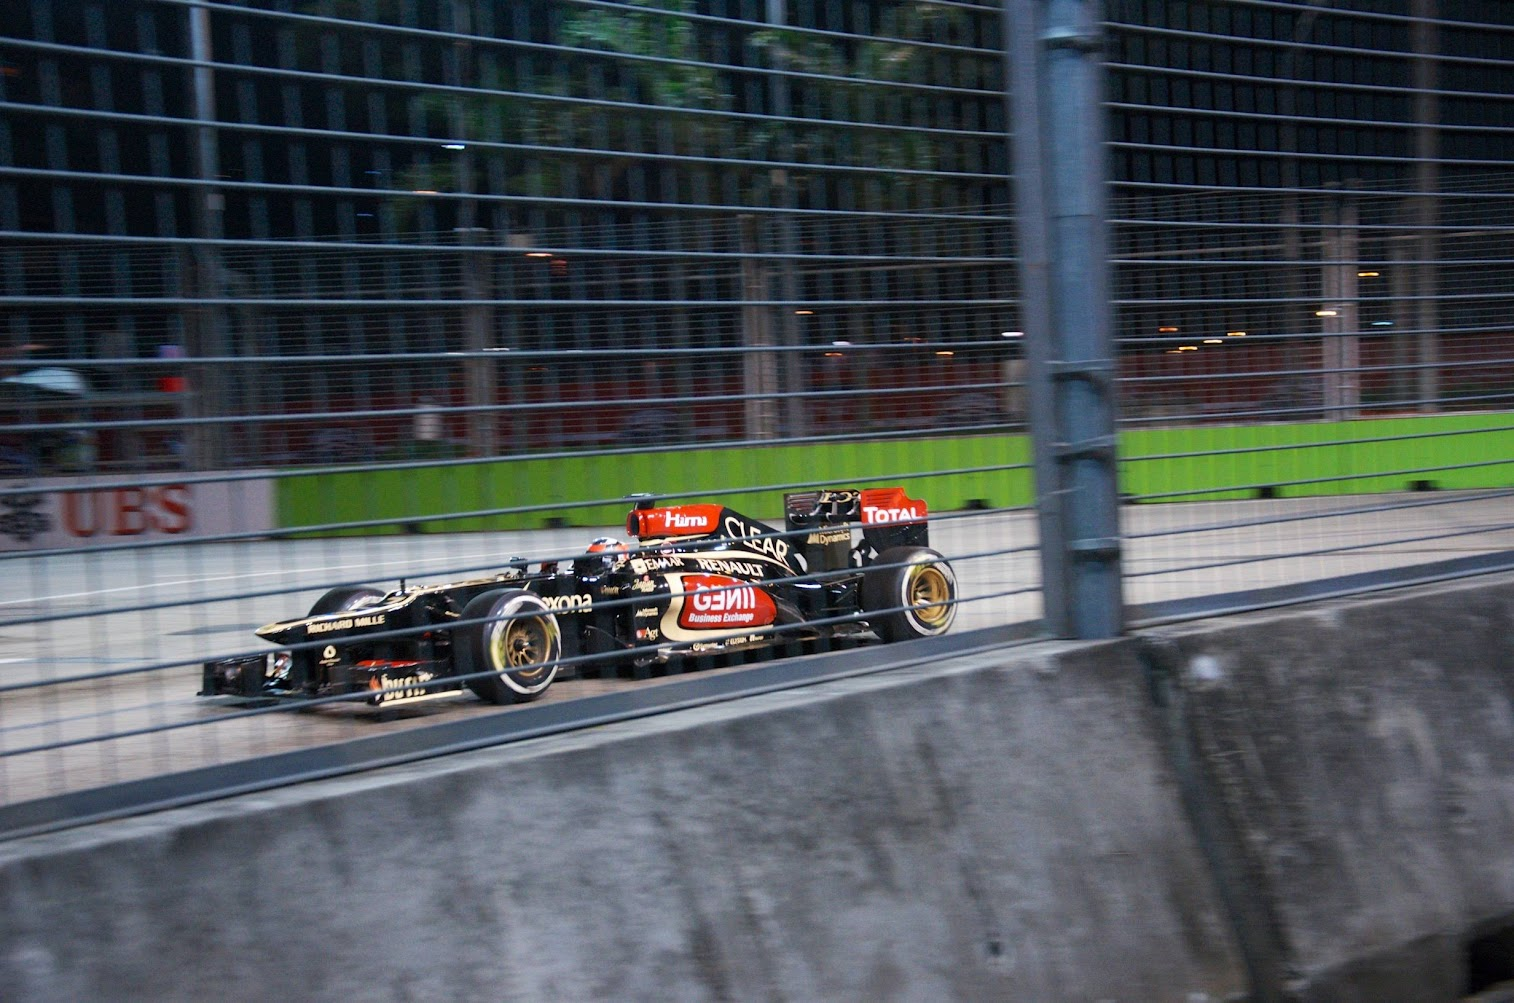 Singapore GP 2013 Qualifying at Turn 9